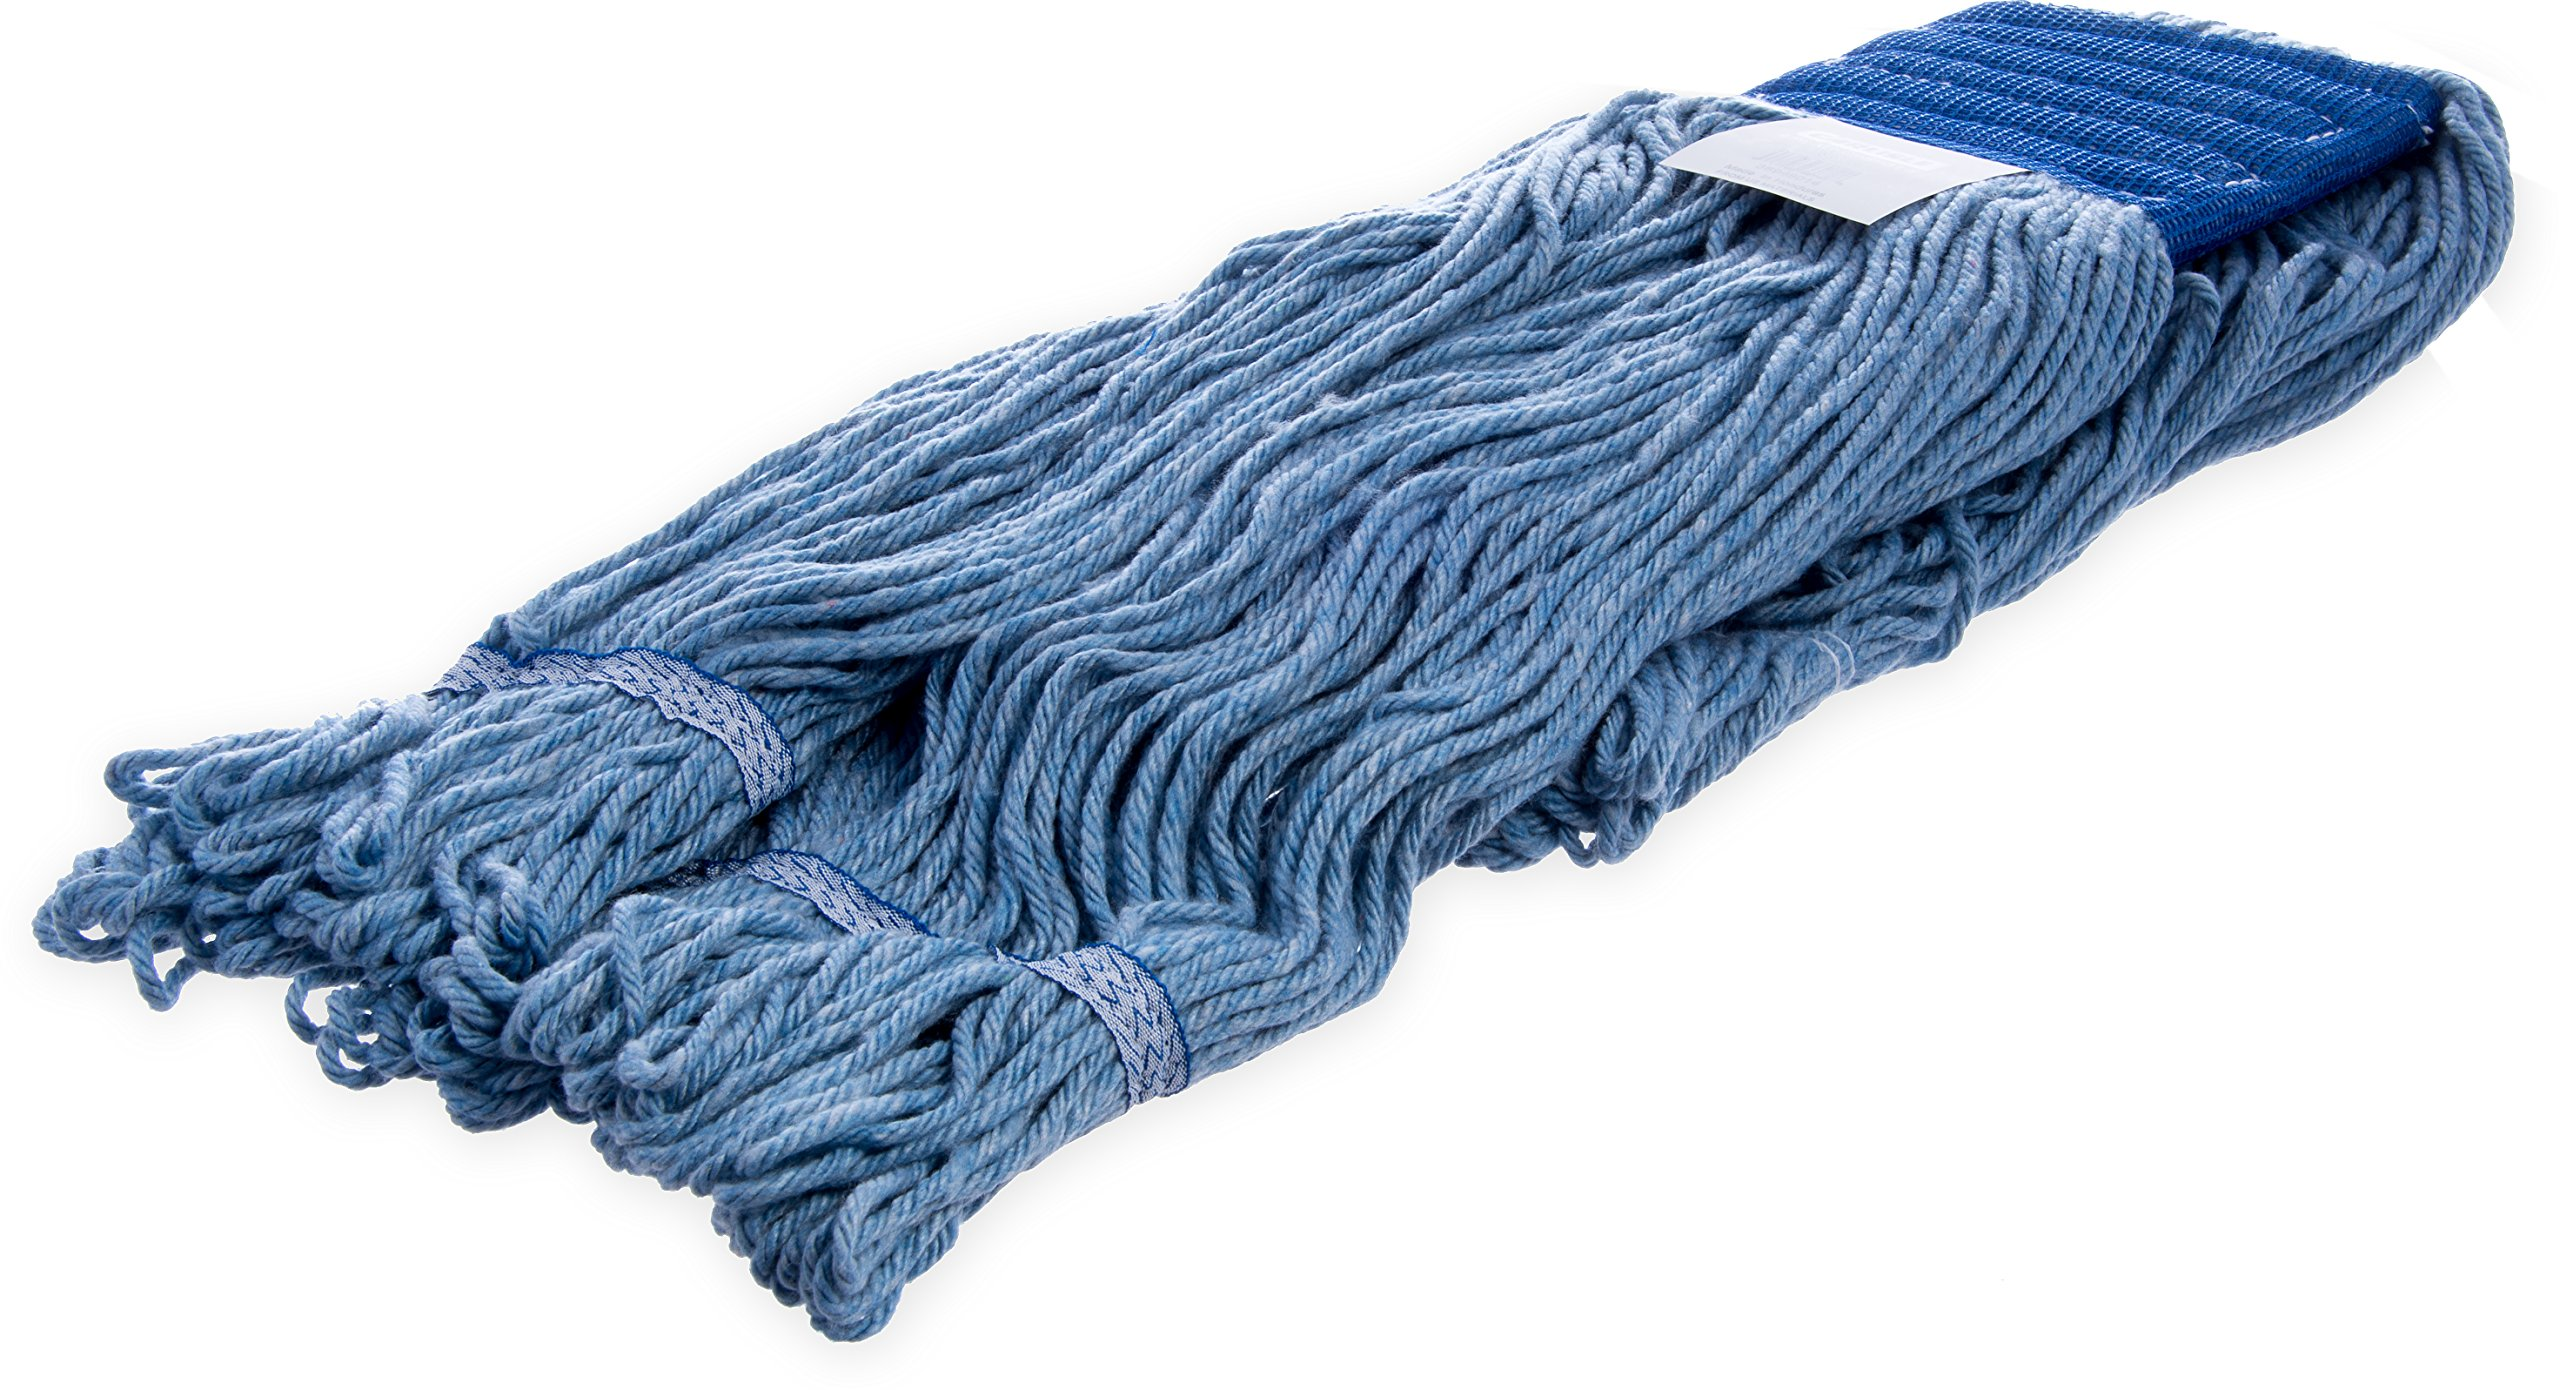 Carlisle 36946014 Looped-End Premium Mop Head With Blue Band, X-Large, Blue